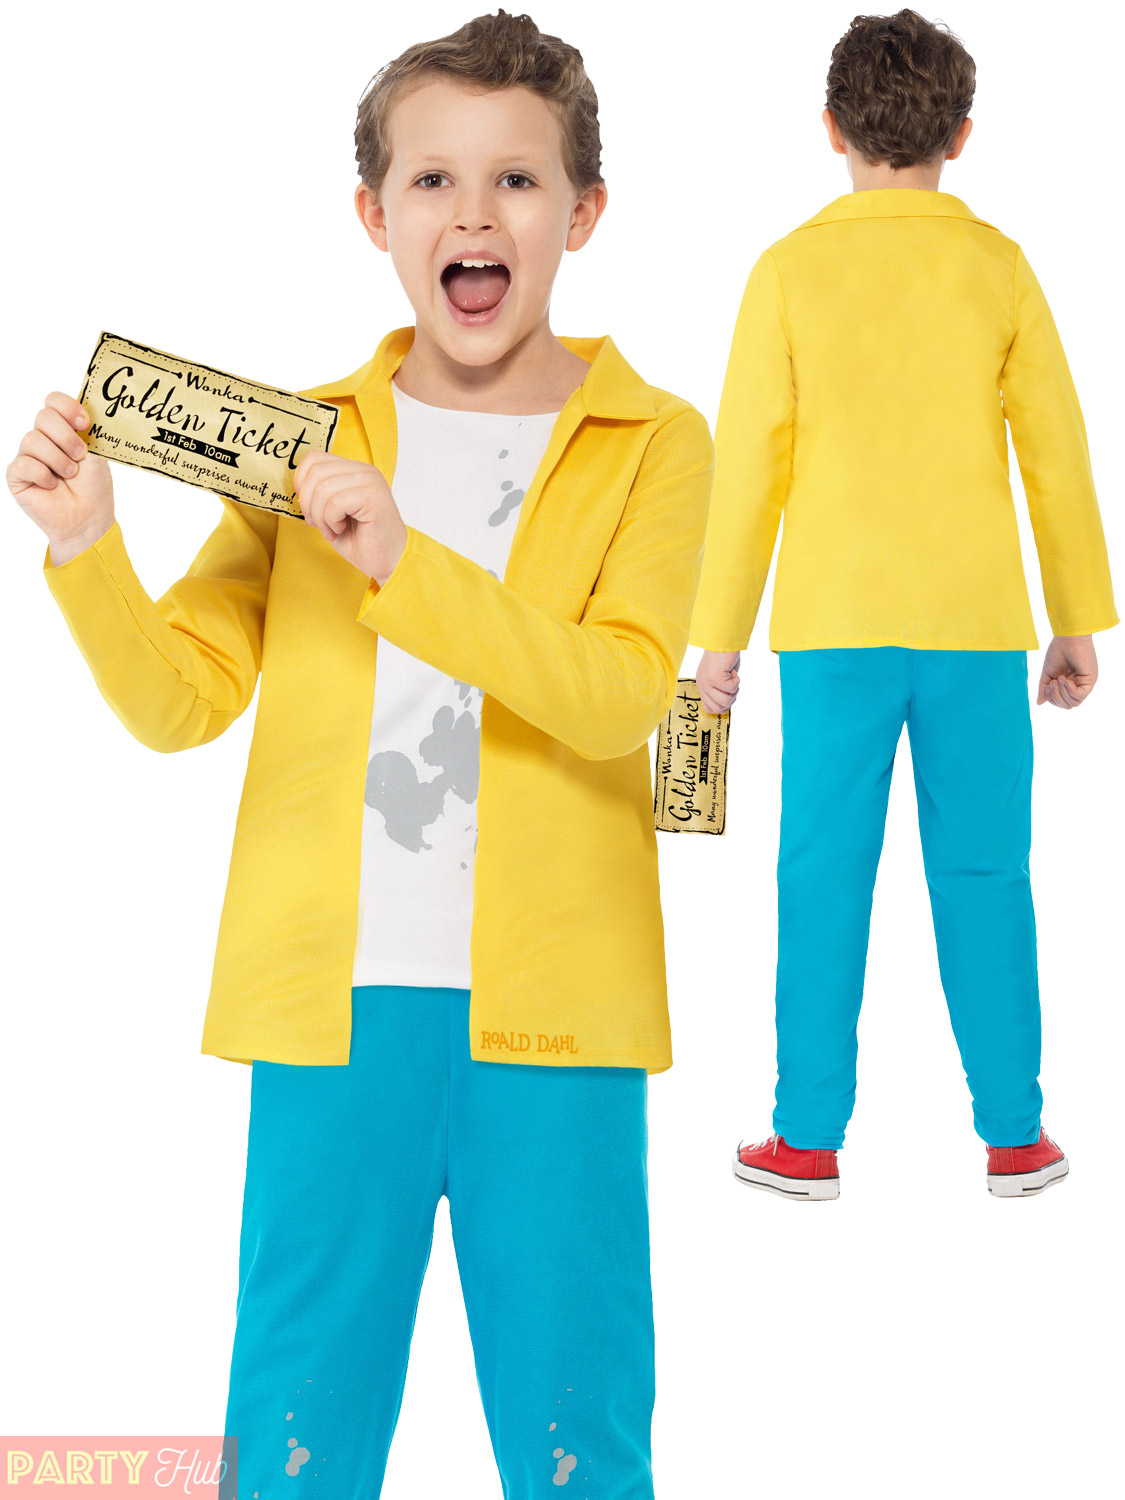 Details About Charlie Chocolate Factory Roald Dahl Costume Fancy Dress Book Day Boys Girls Kid